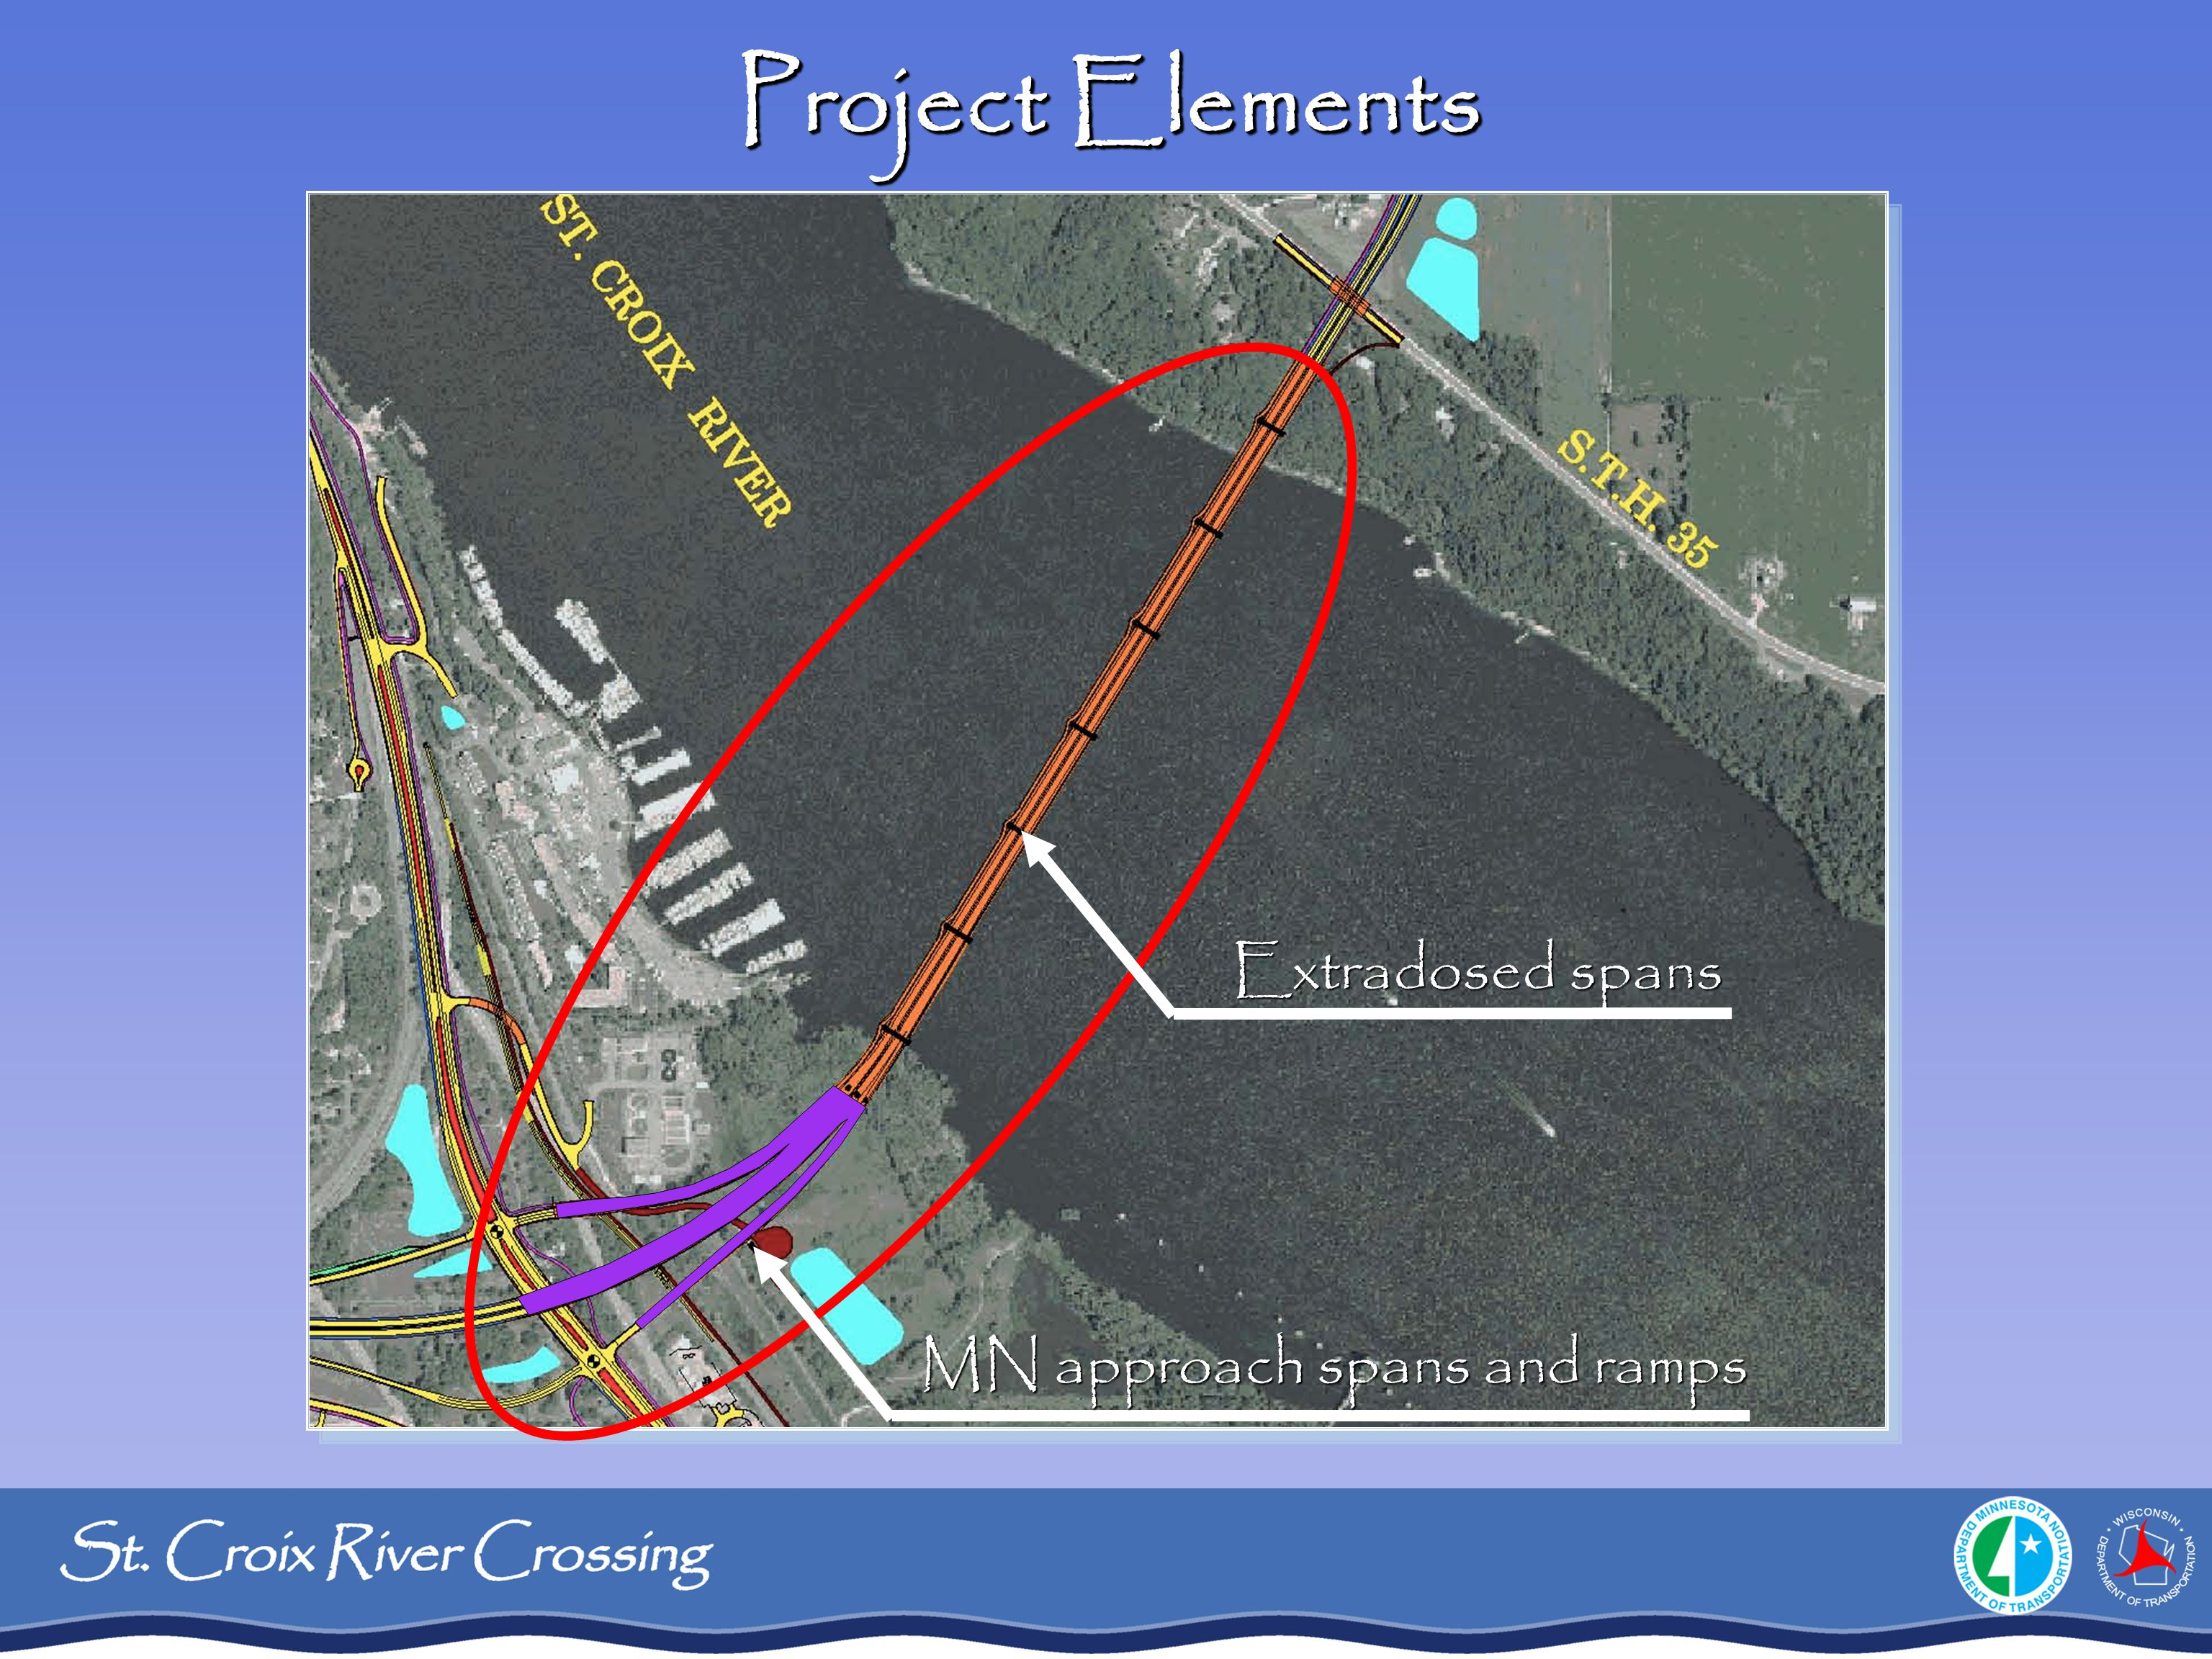 Project Elements Extradosed spans MN approach spans and ramps